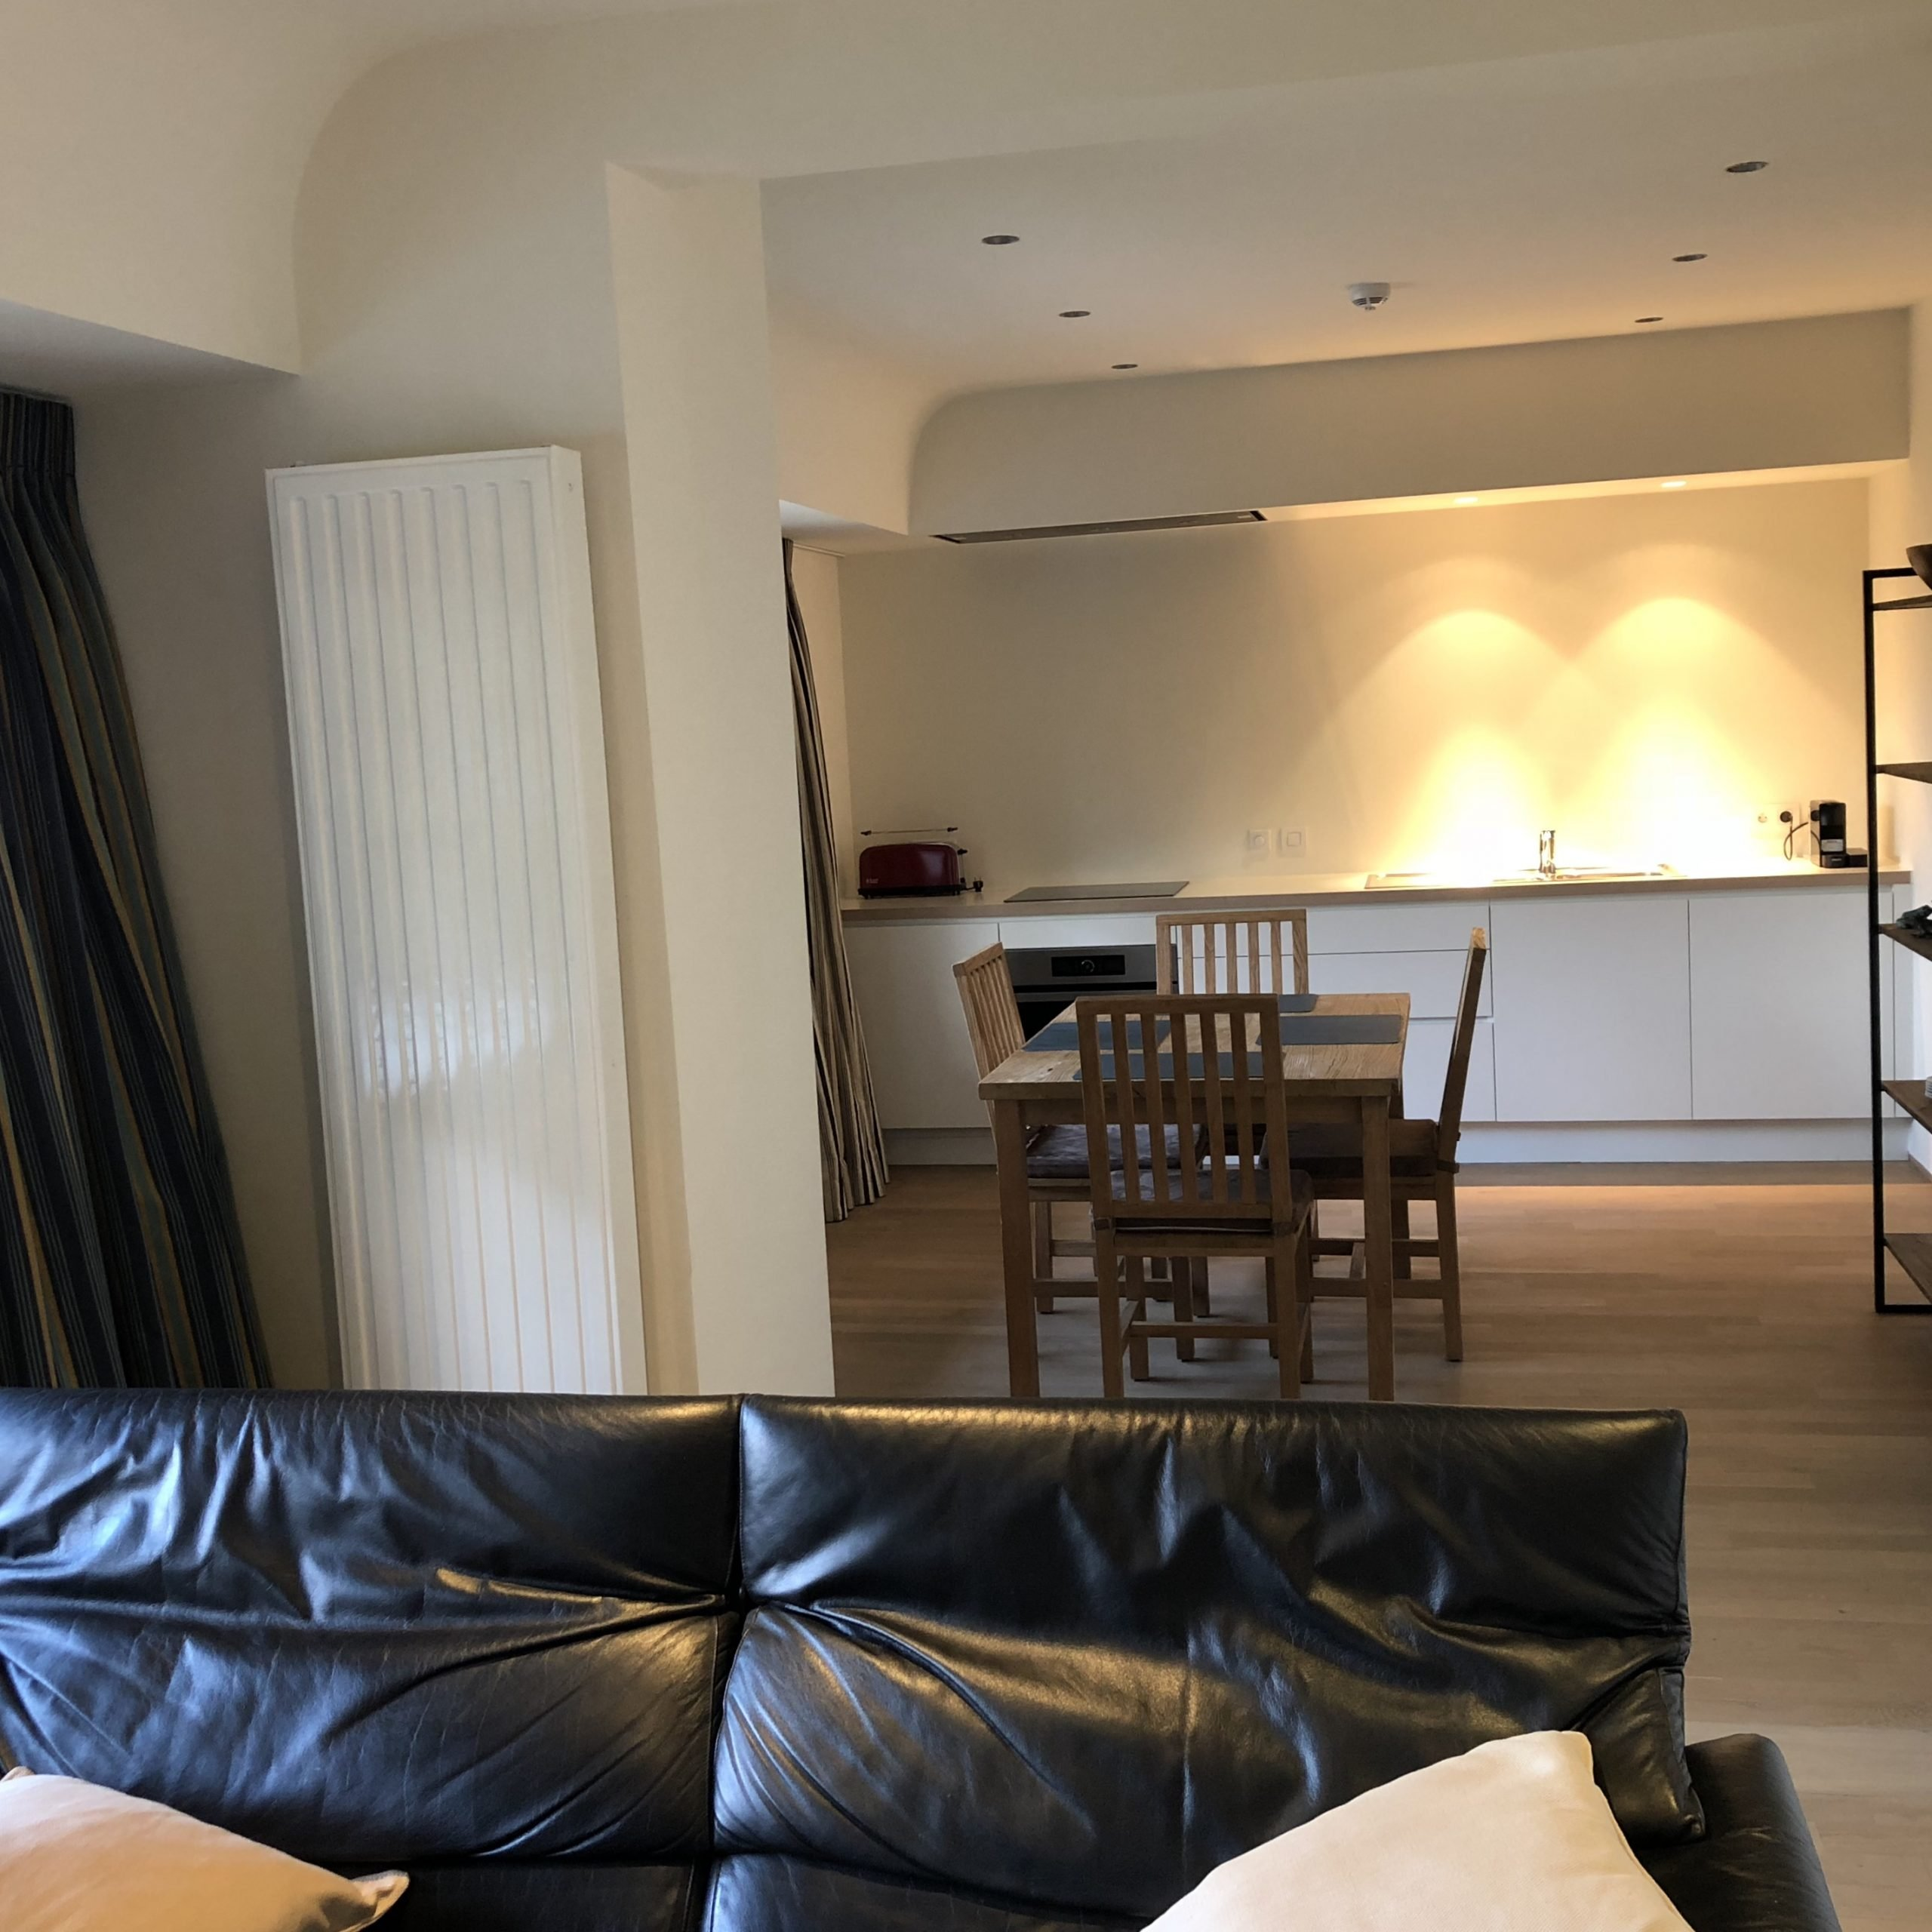 Louse Torla - Luxury expat apartment in Ghent